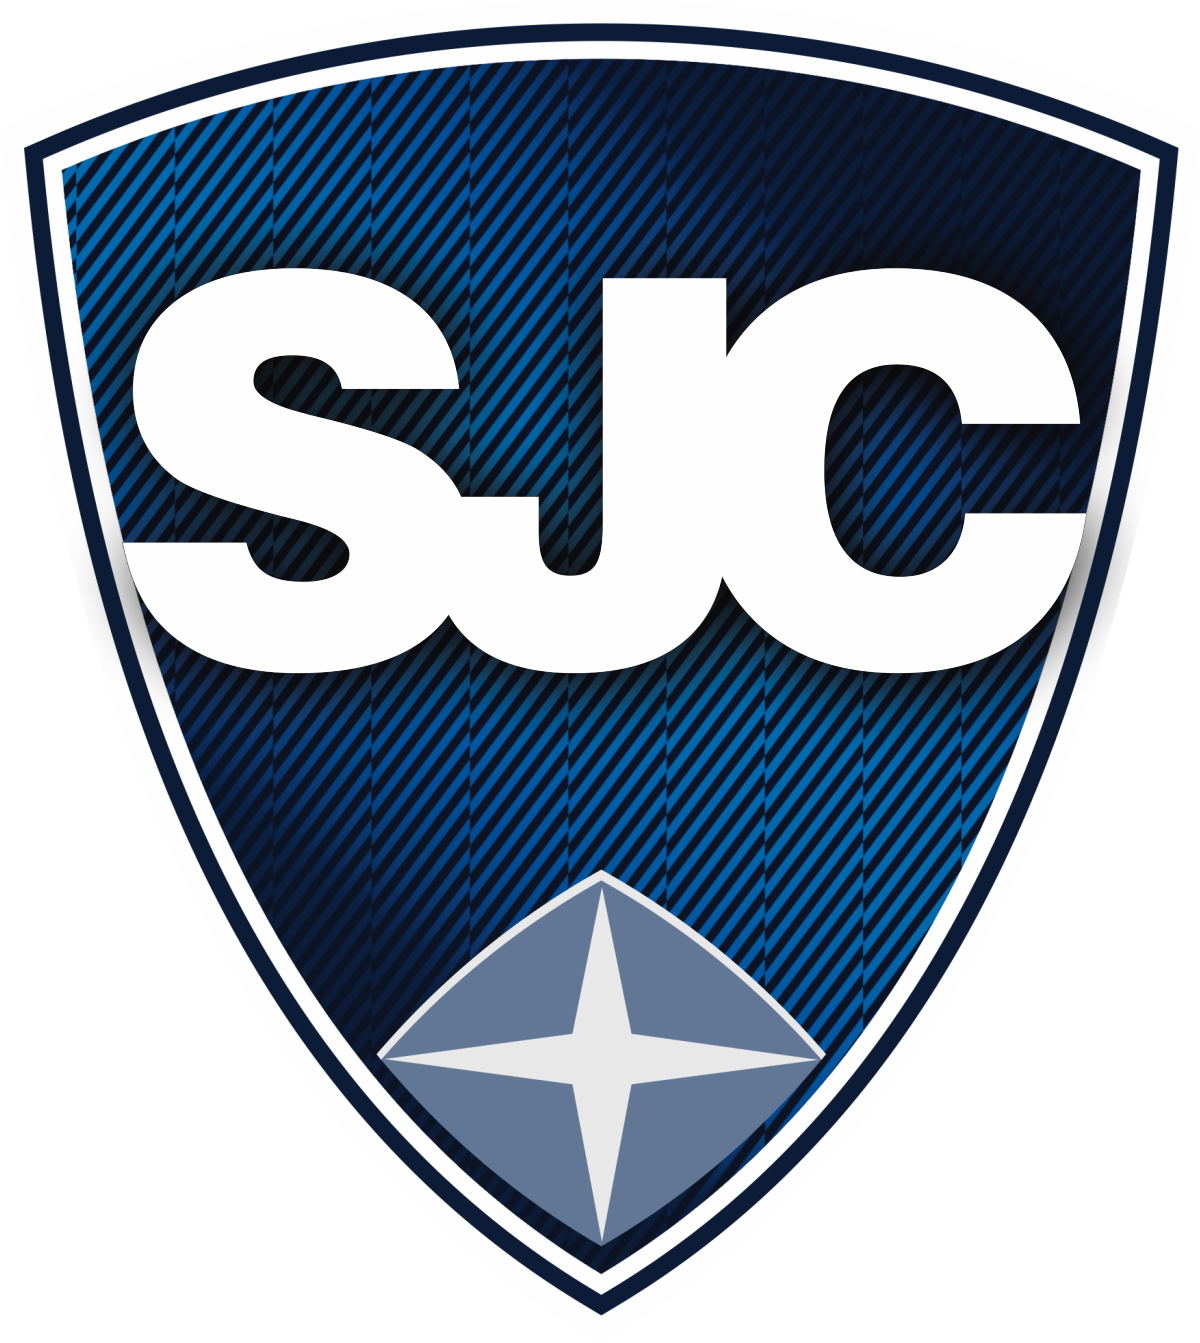 SJC-Security-Services-logo